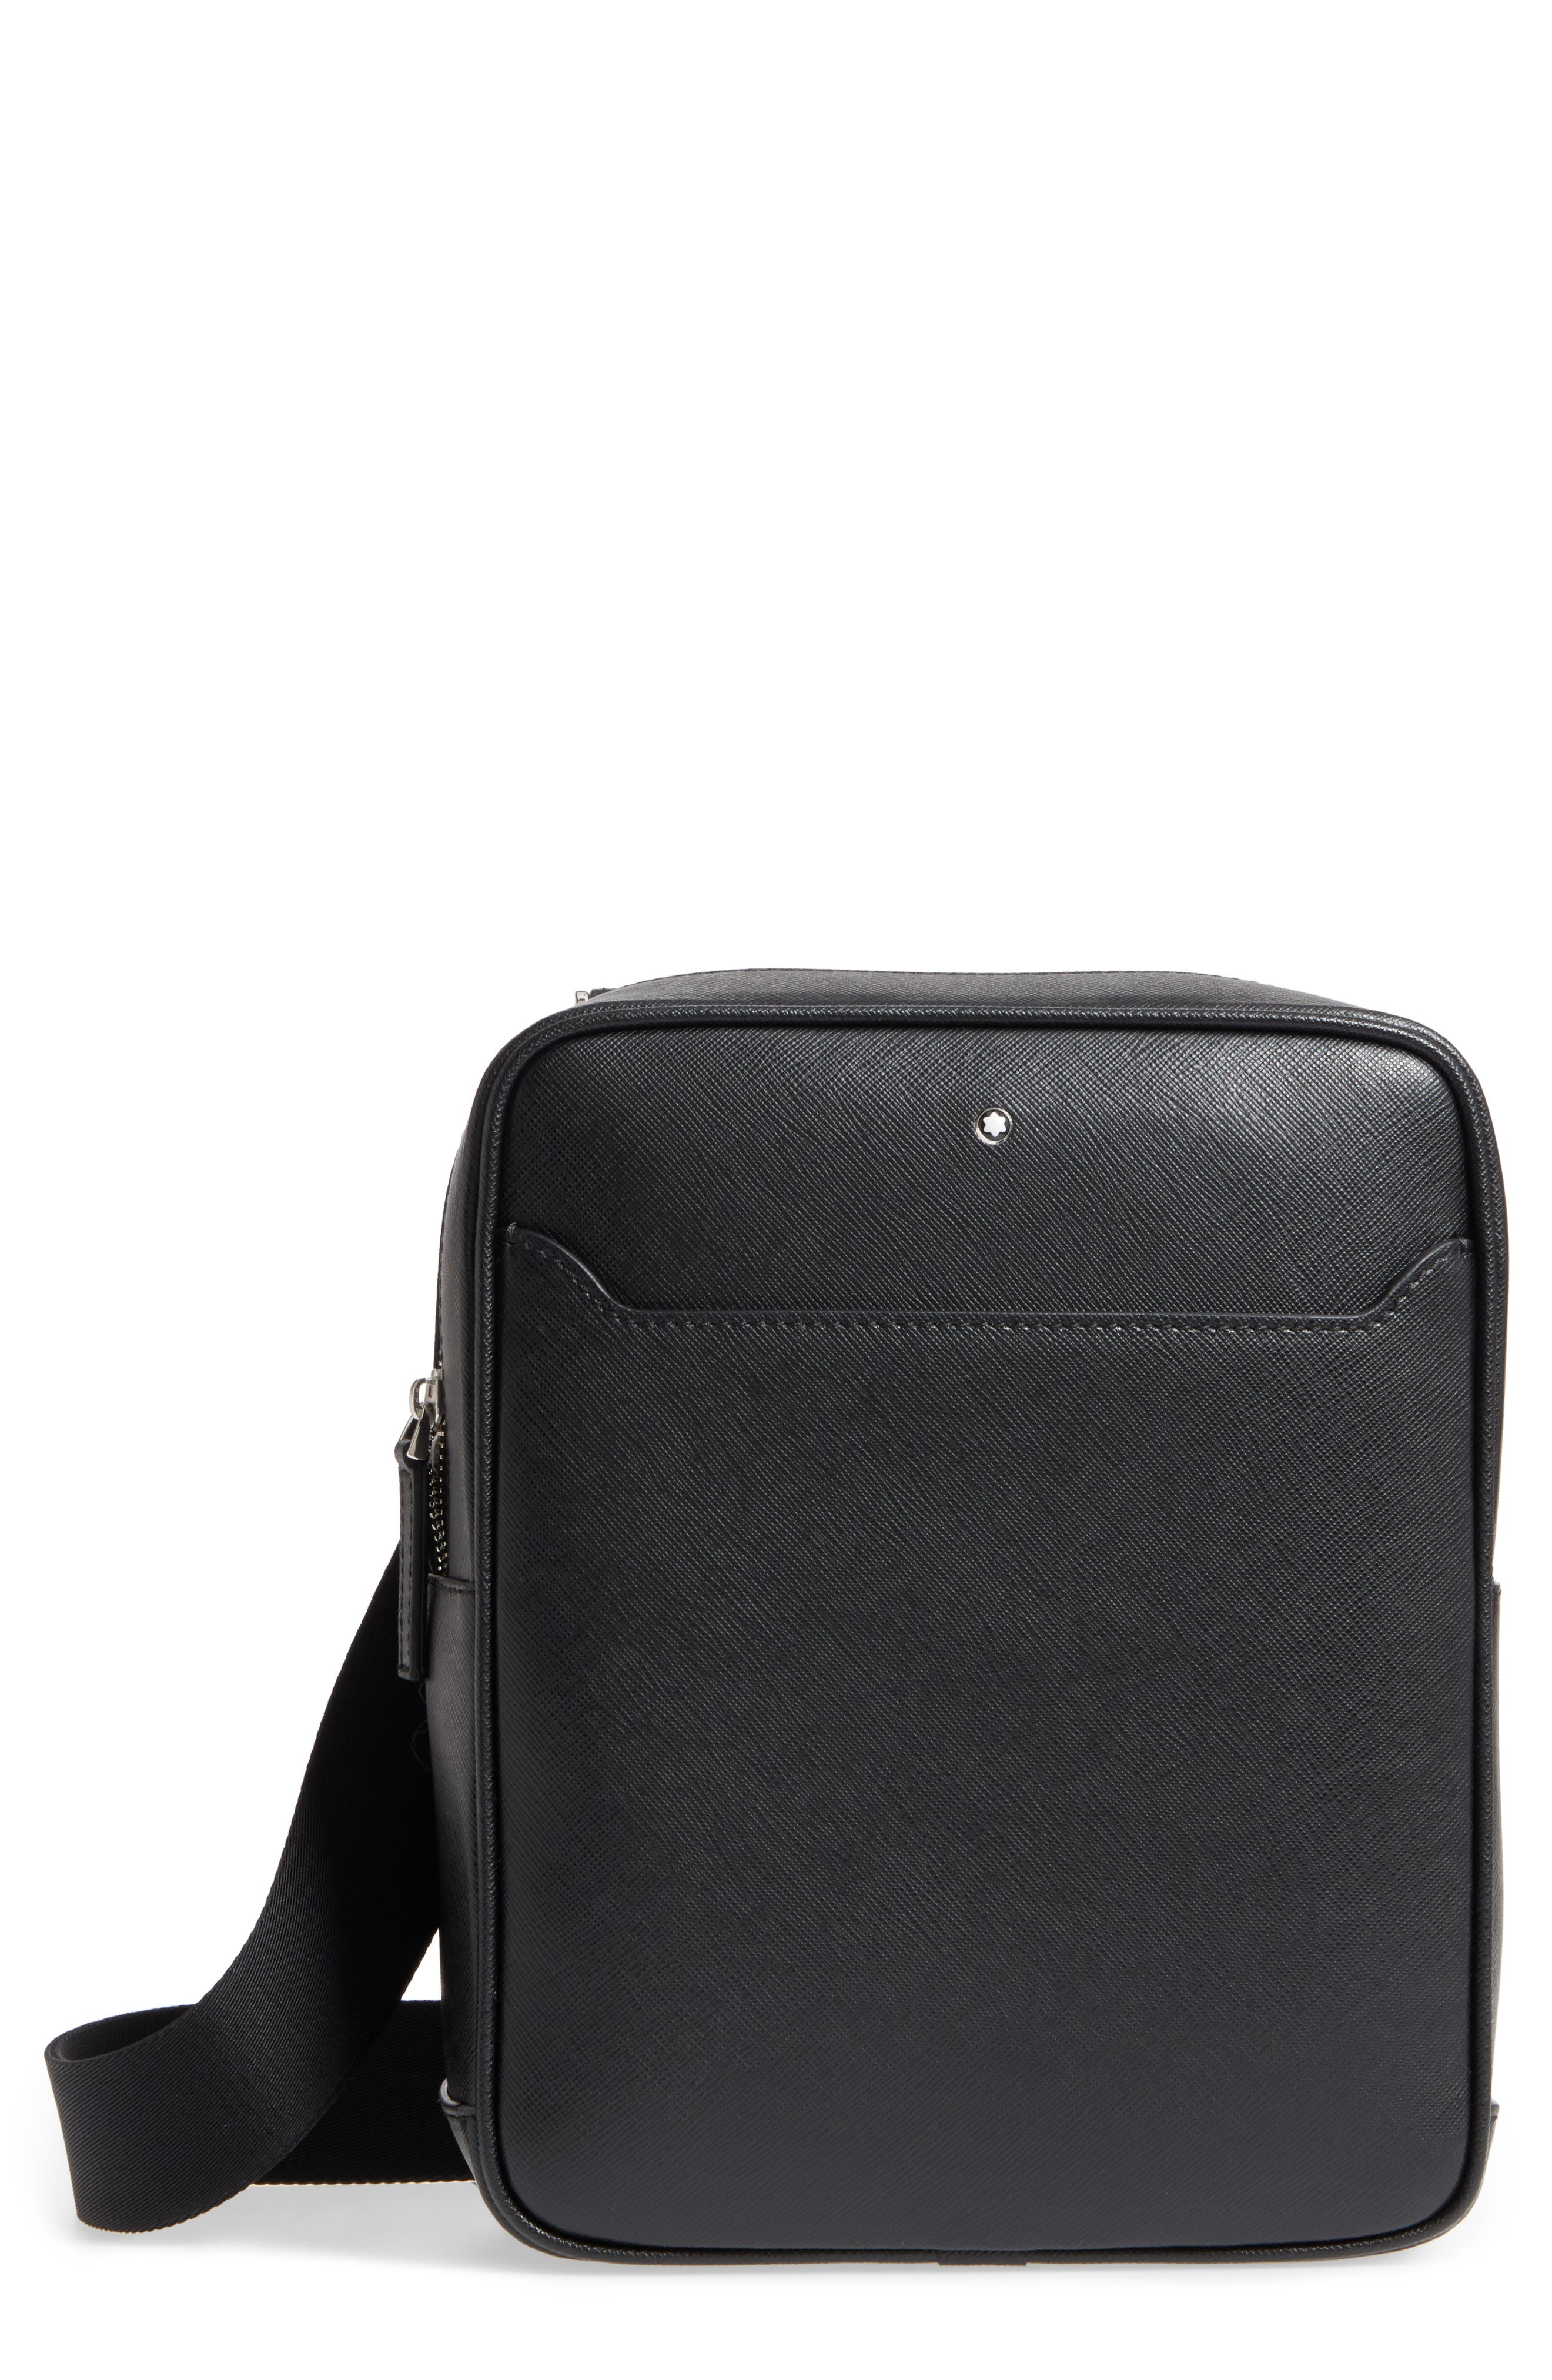 Sartorial North South Leather Bag,                         Main,                         color, Black